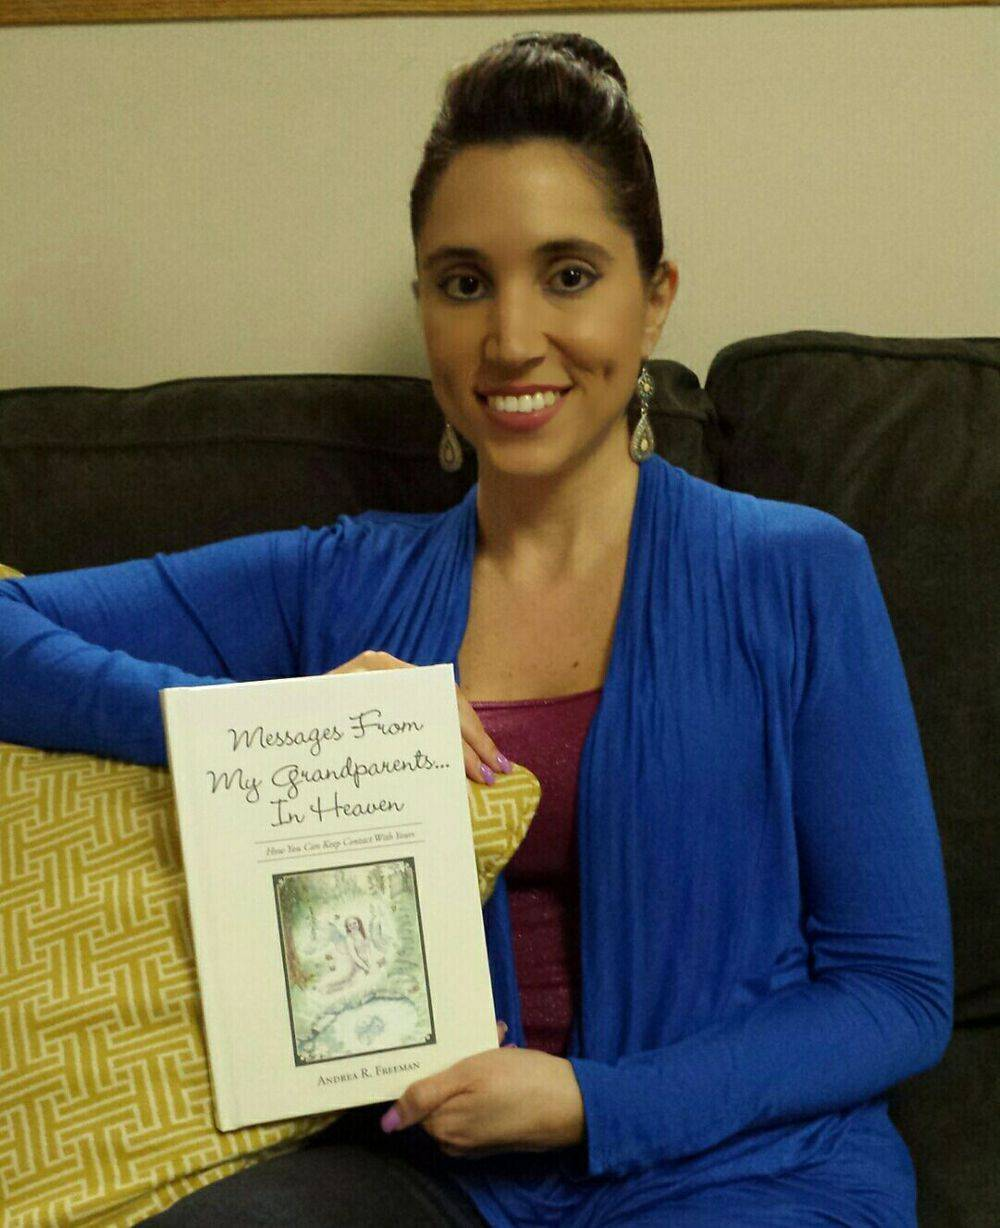 Andrea R Freeman, Author, Messages From My Grandparents In Heaven, Barnes & Noble, Amazon, Balboa Press, Book Release